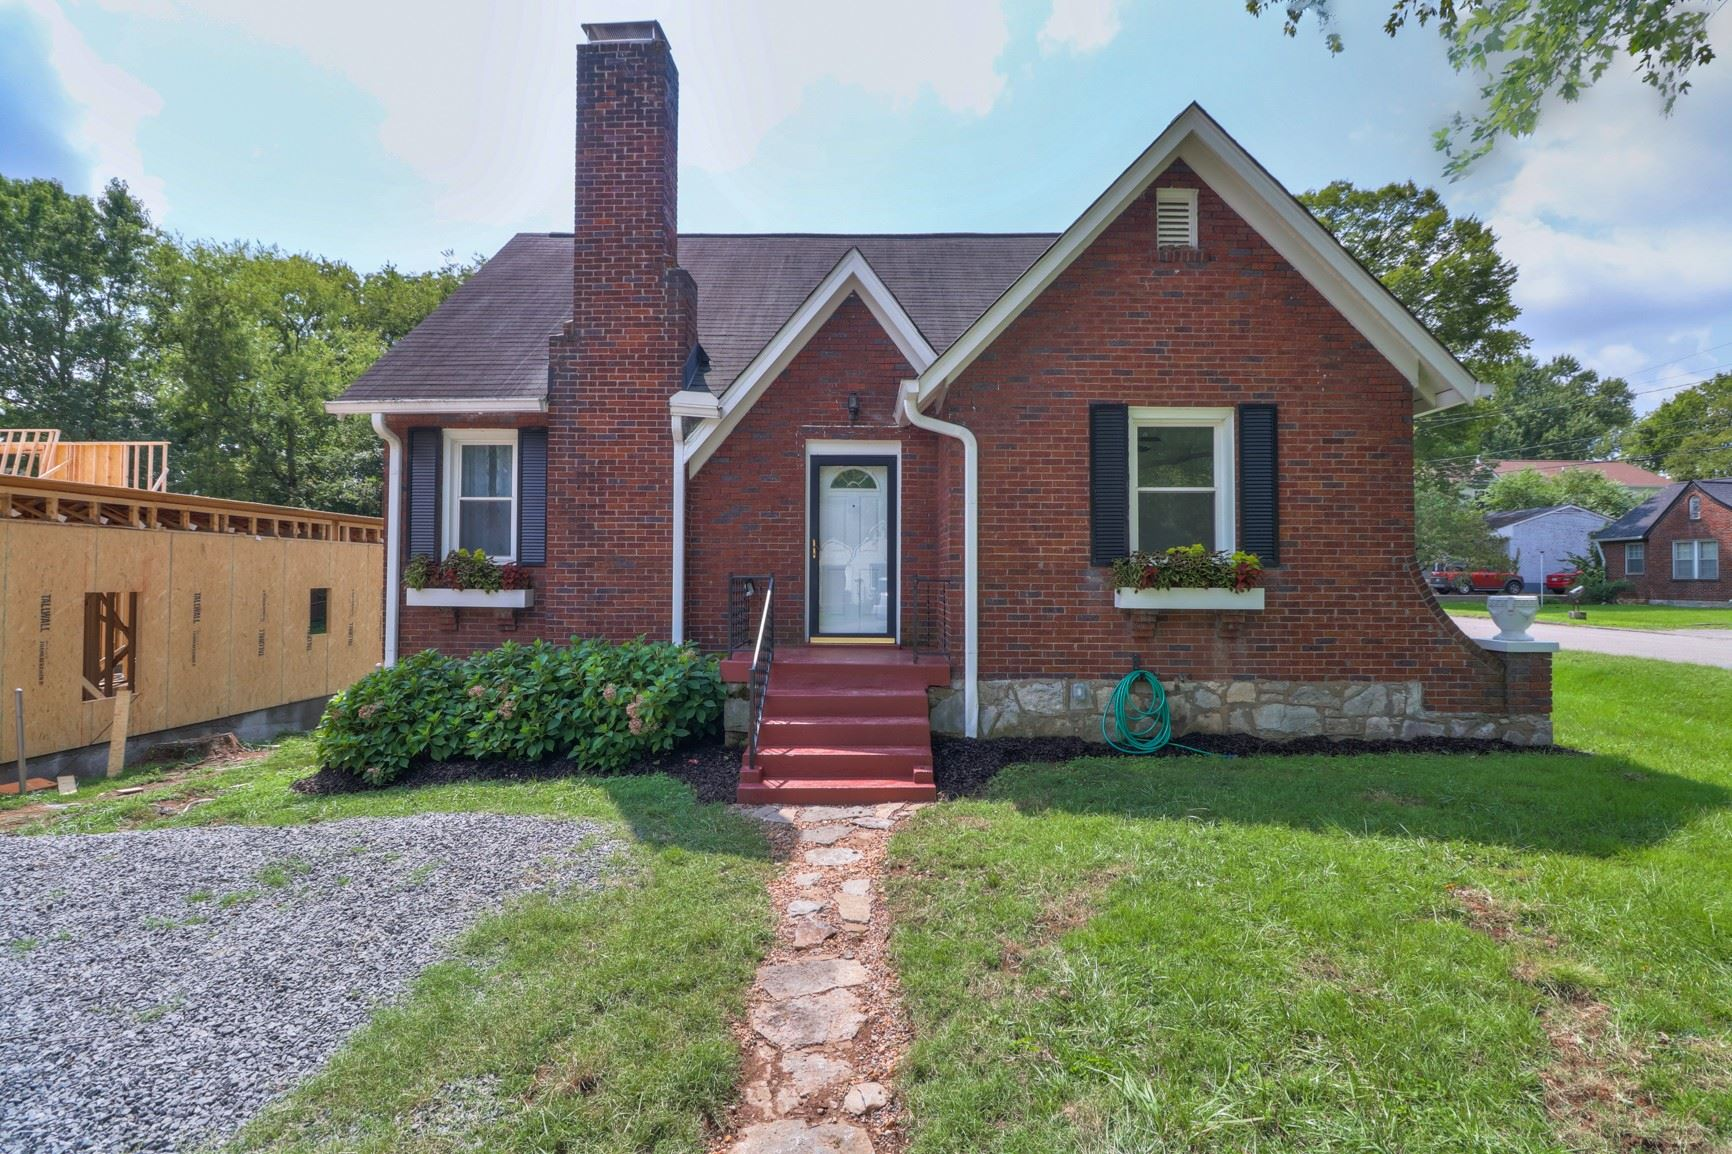 900 Burchwood Ave, Nashville, TN 37216 - MLS#: 2185045